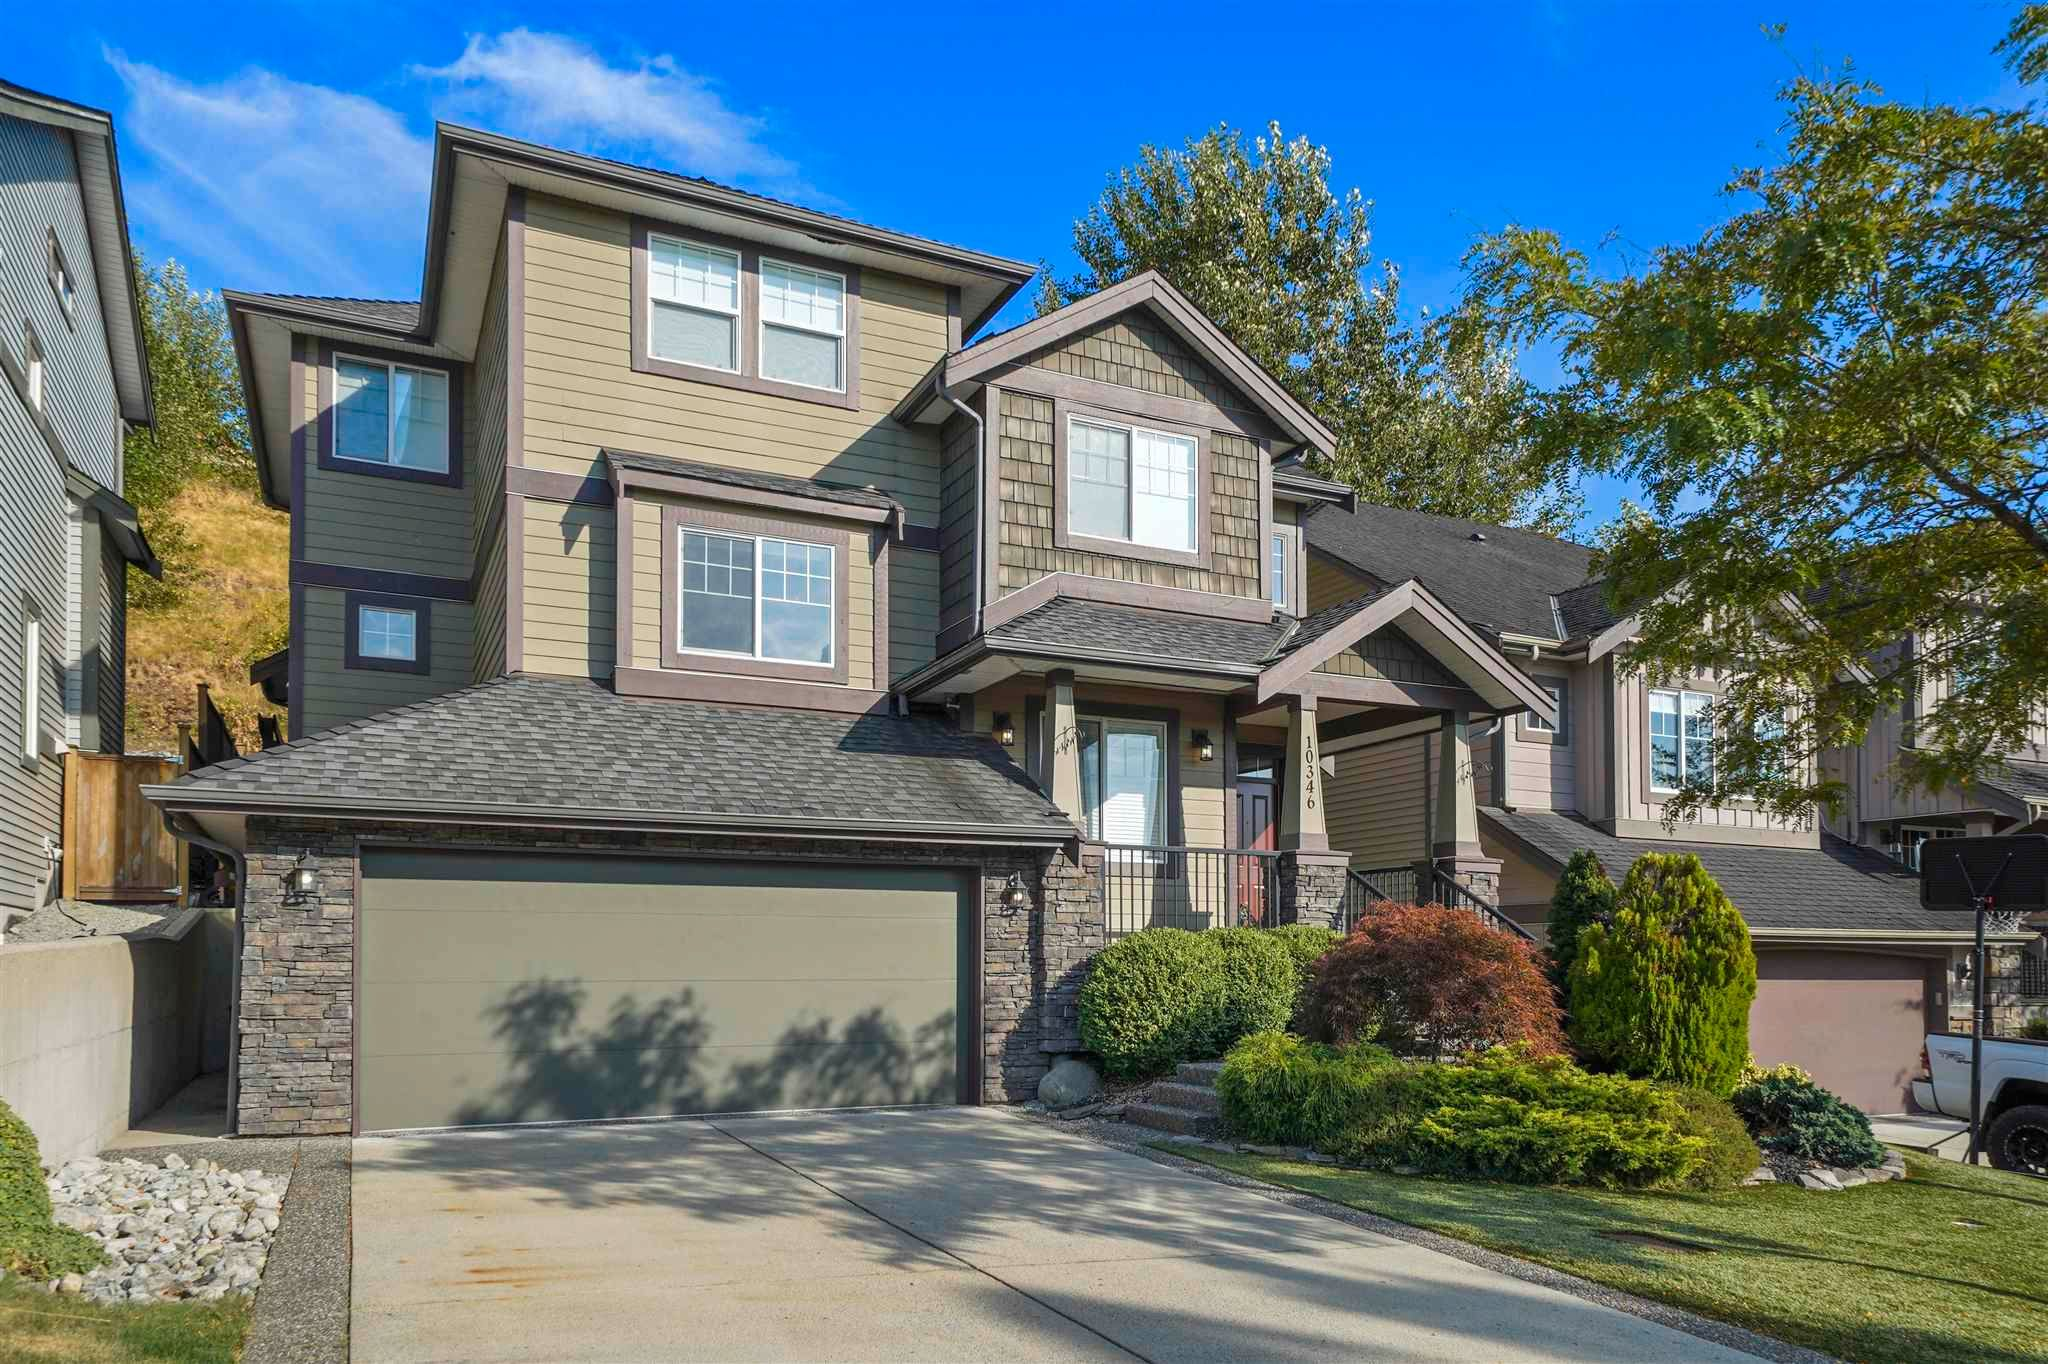 """Main Photo: 10346 MCEACHERN Street in Maple Ridge: Albion House for sale in """"Thornhill Heights"""" : MLS®# R2607445"""